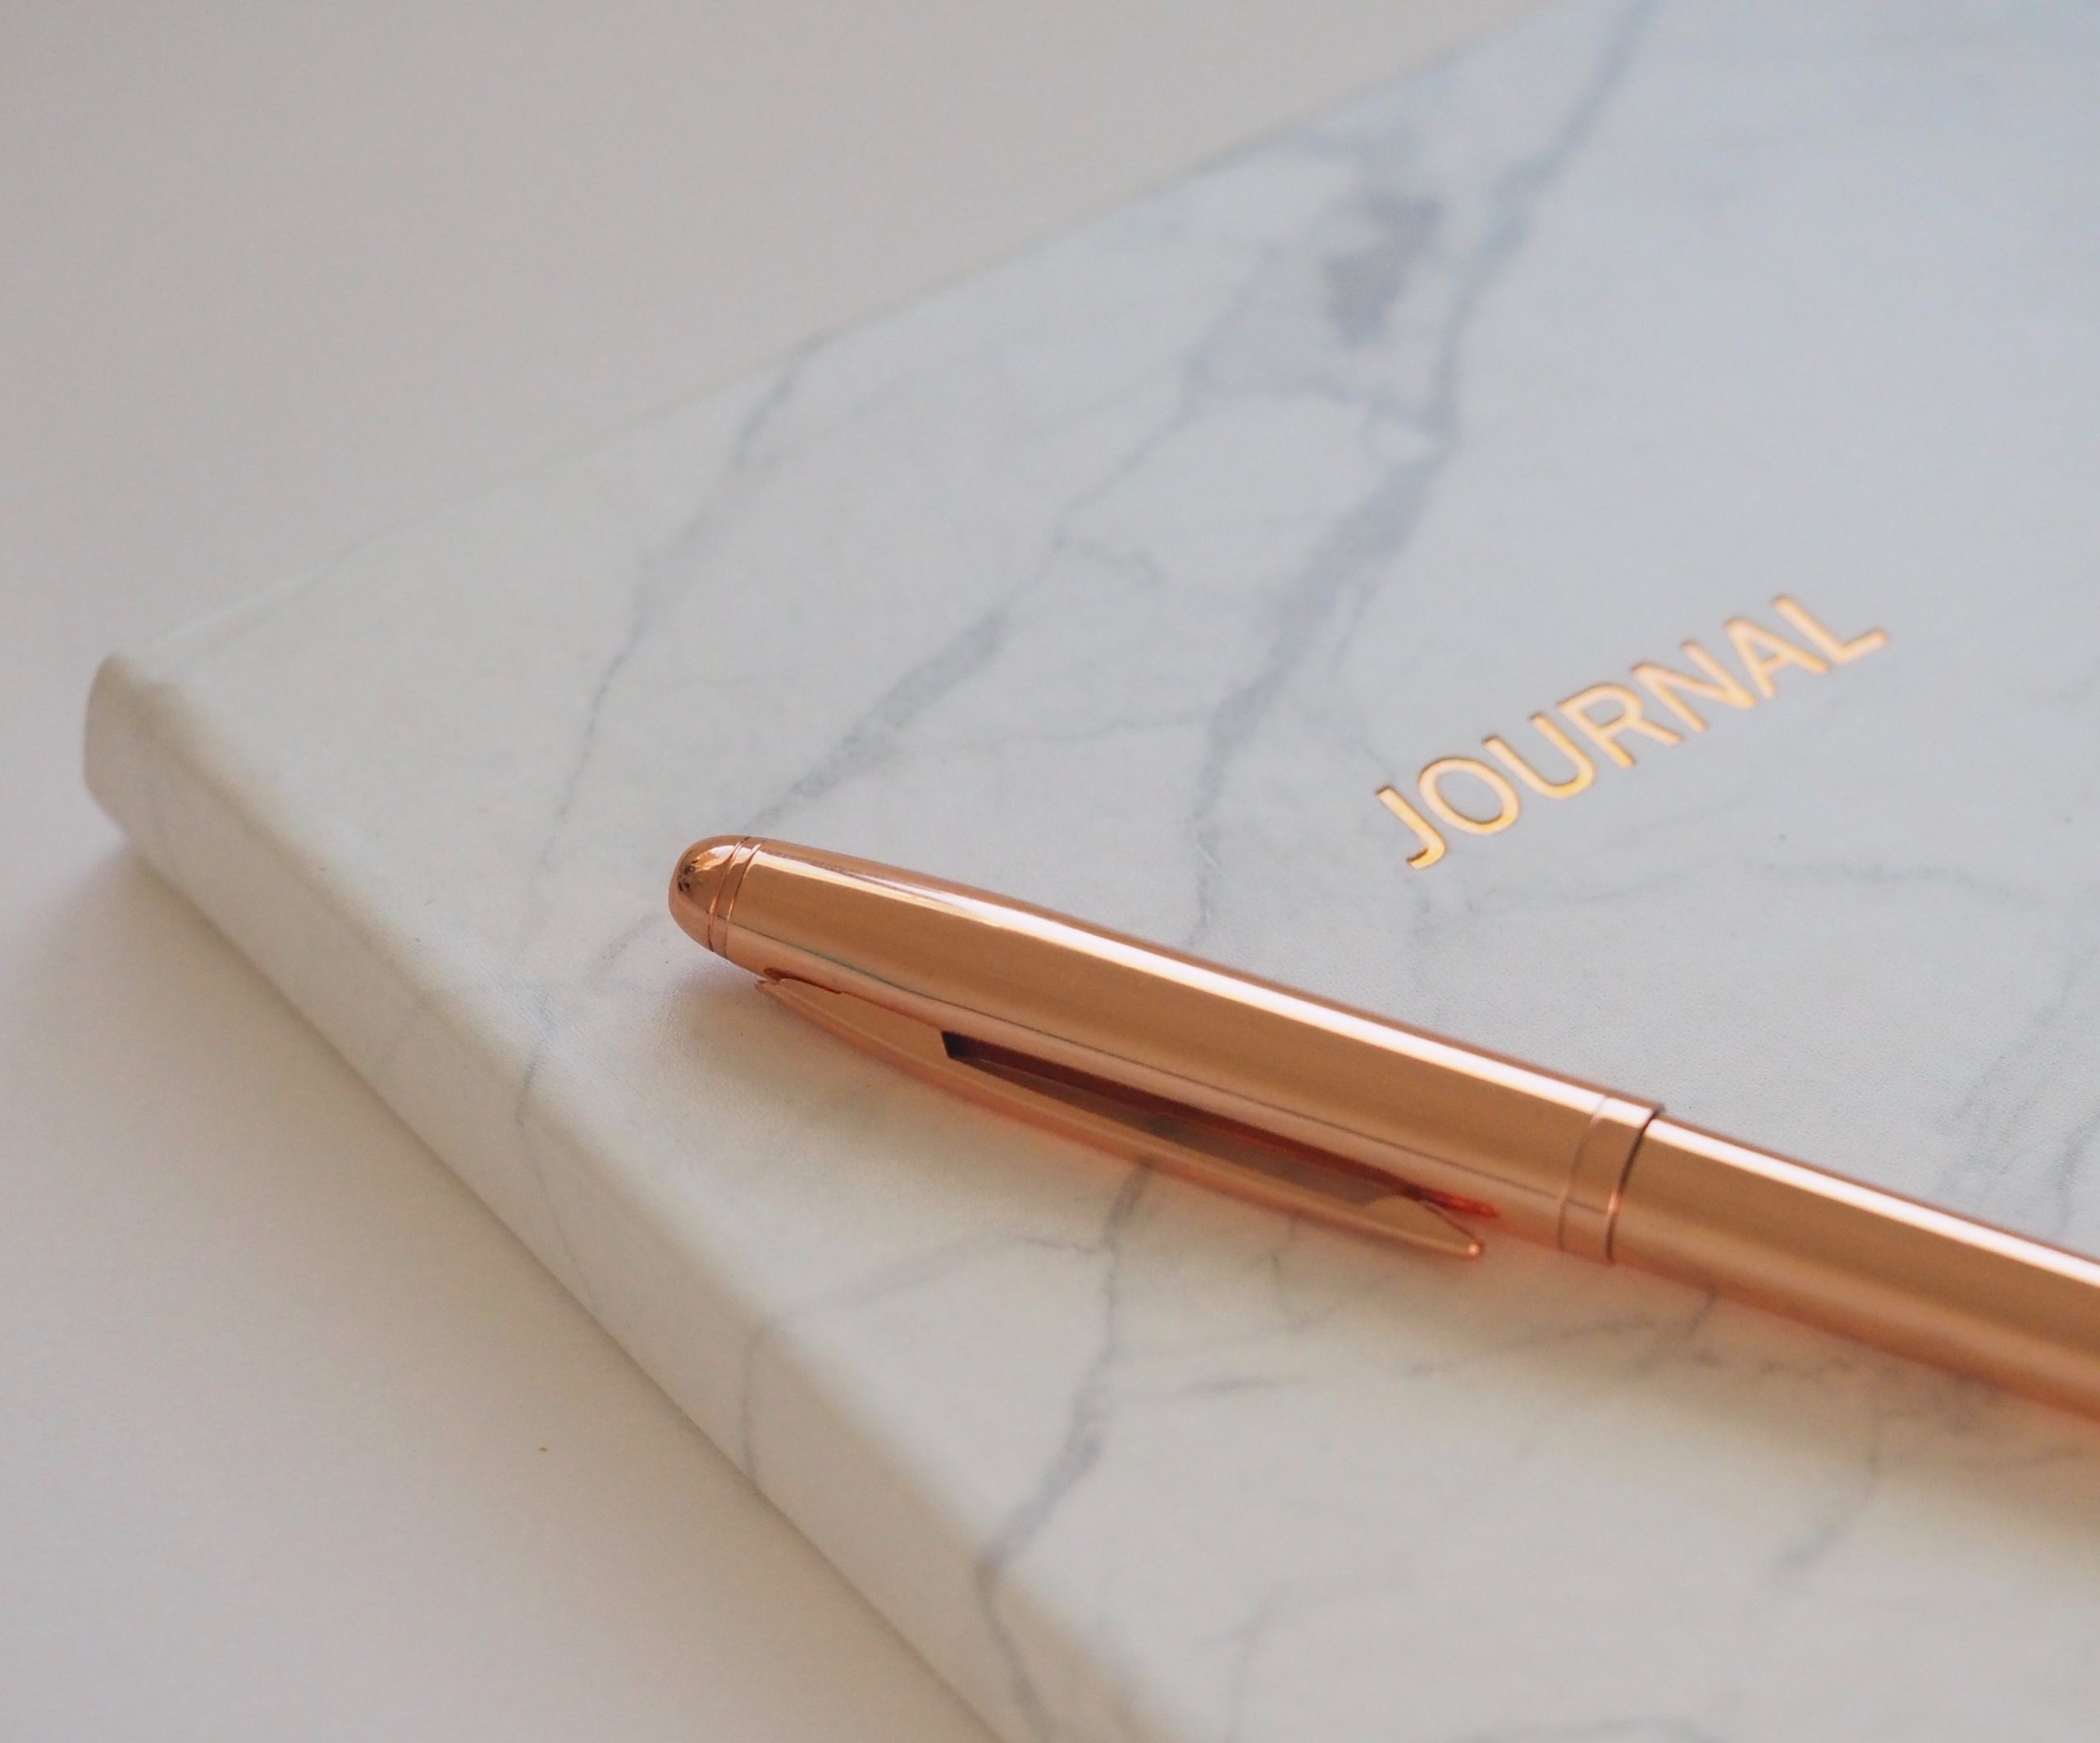 A journal with a marbel cover and rose gold pen